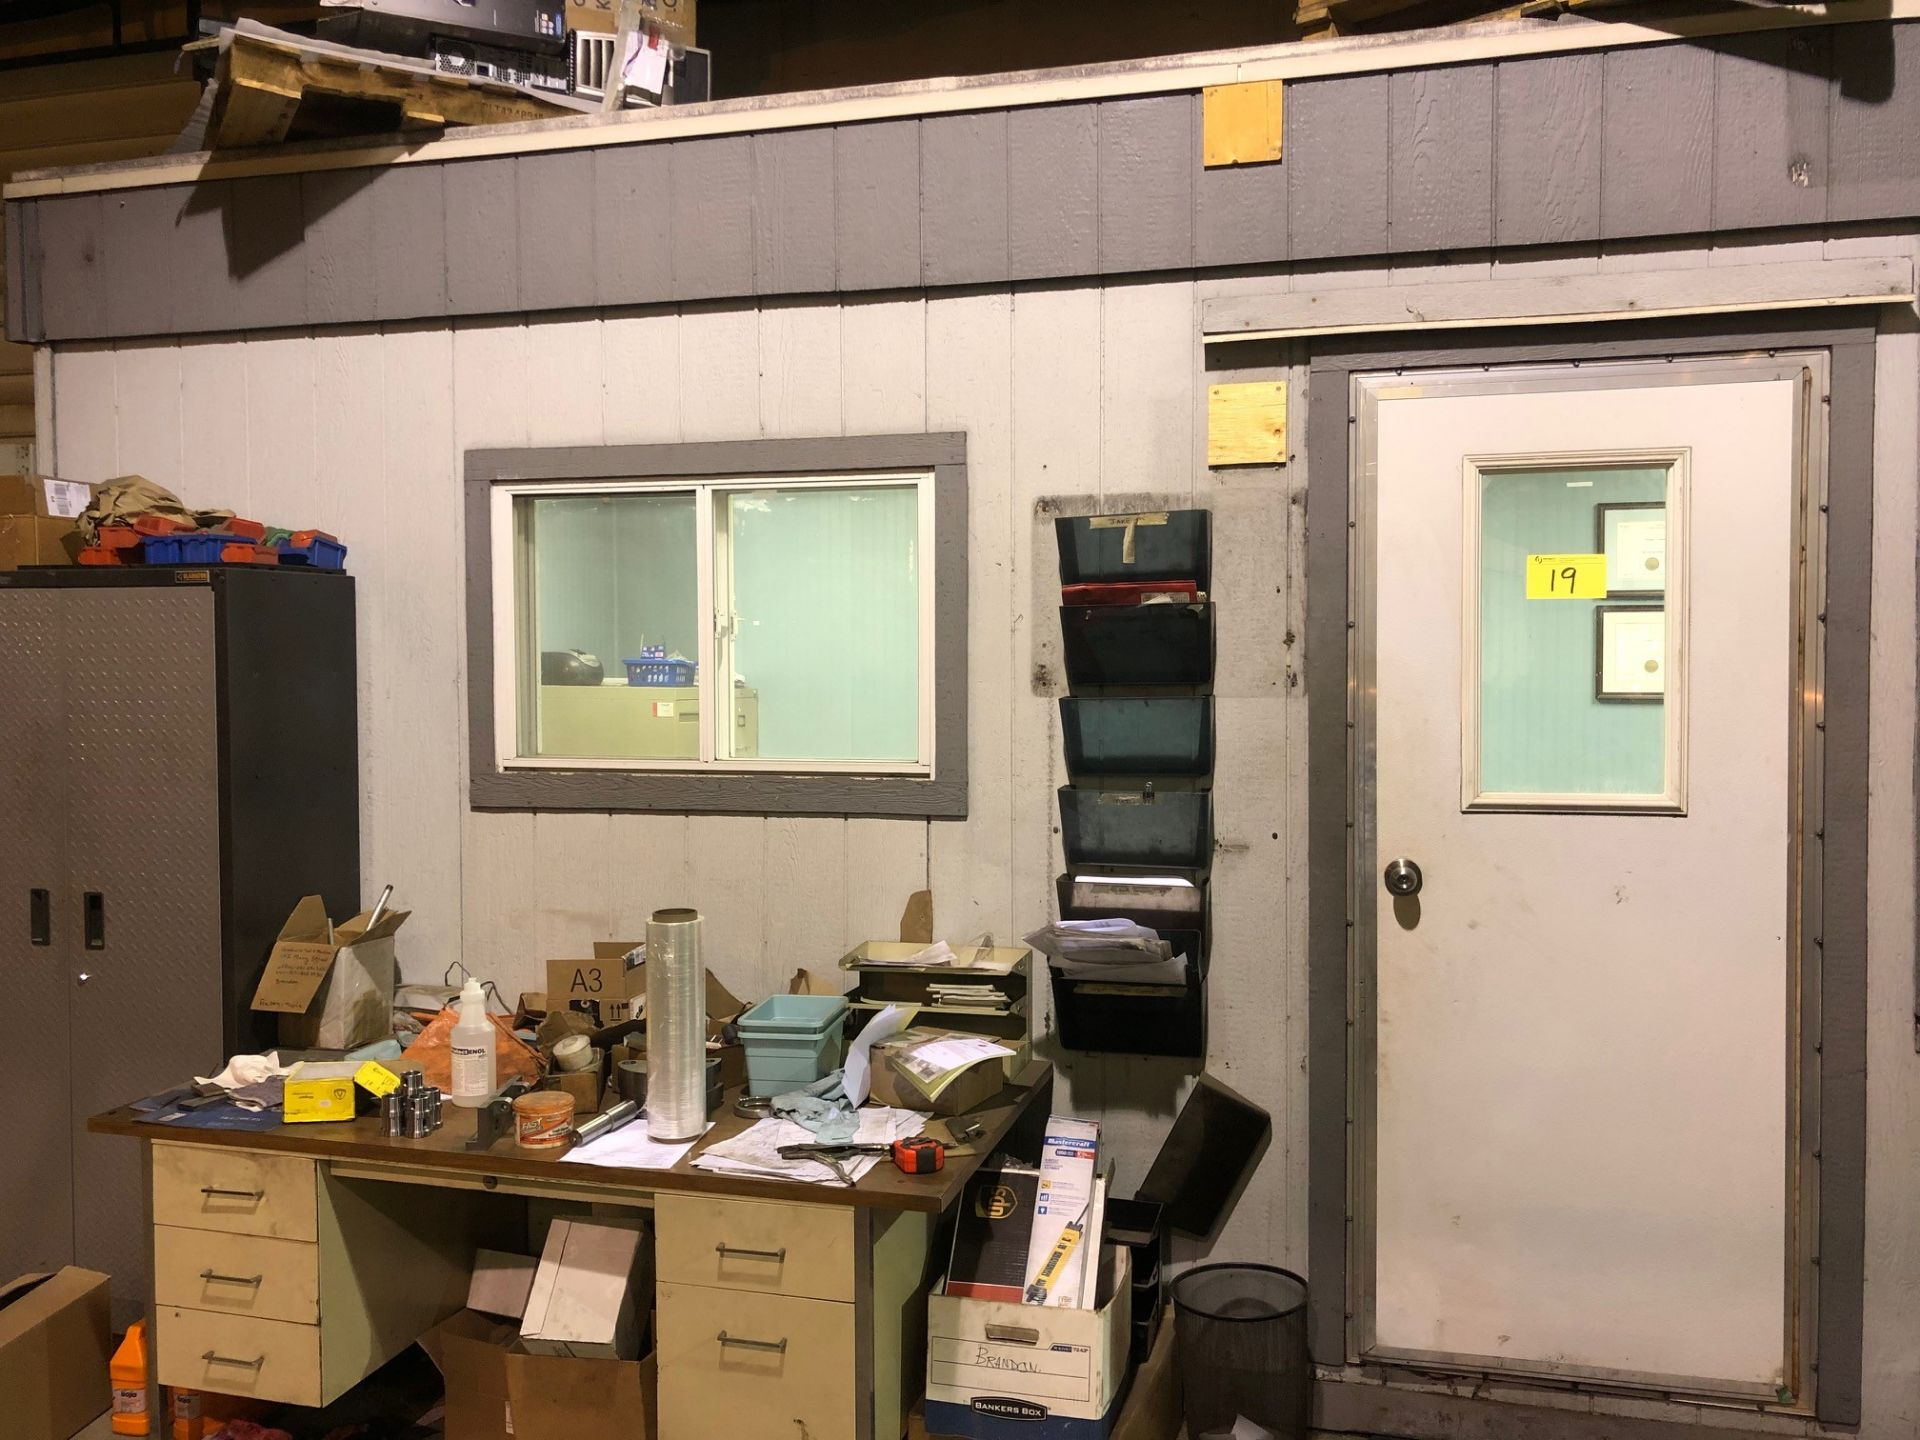 Lot 19 - 10' x 20' PORTABLE OFFICE UNIT (NO CONTENTS)